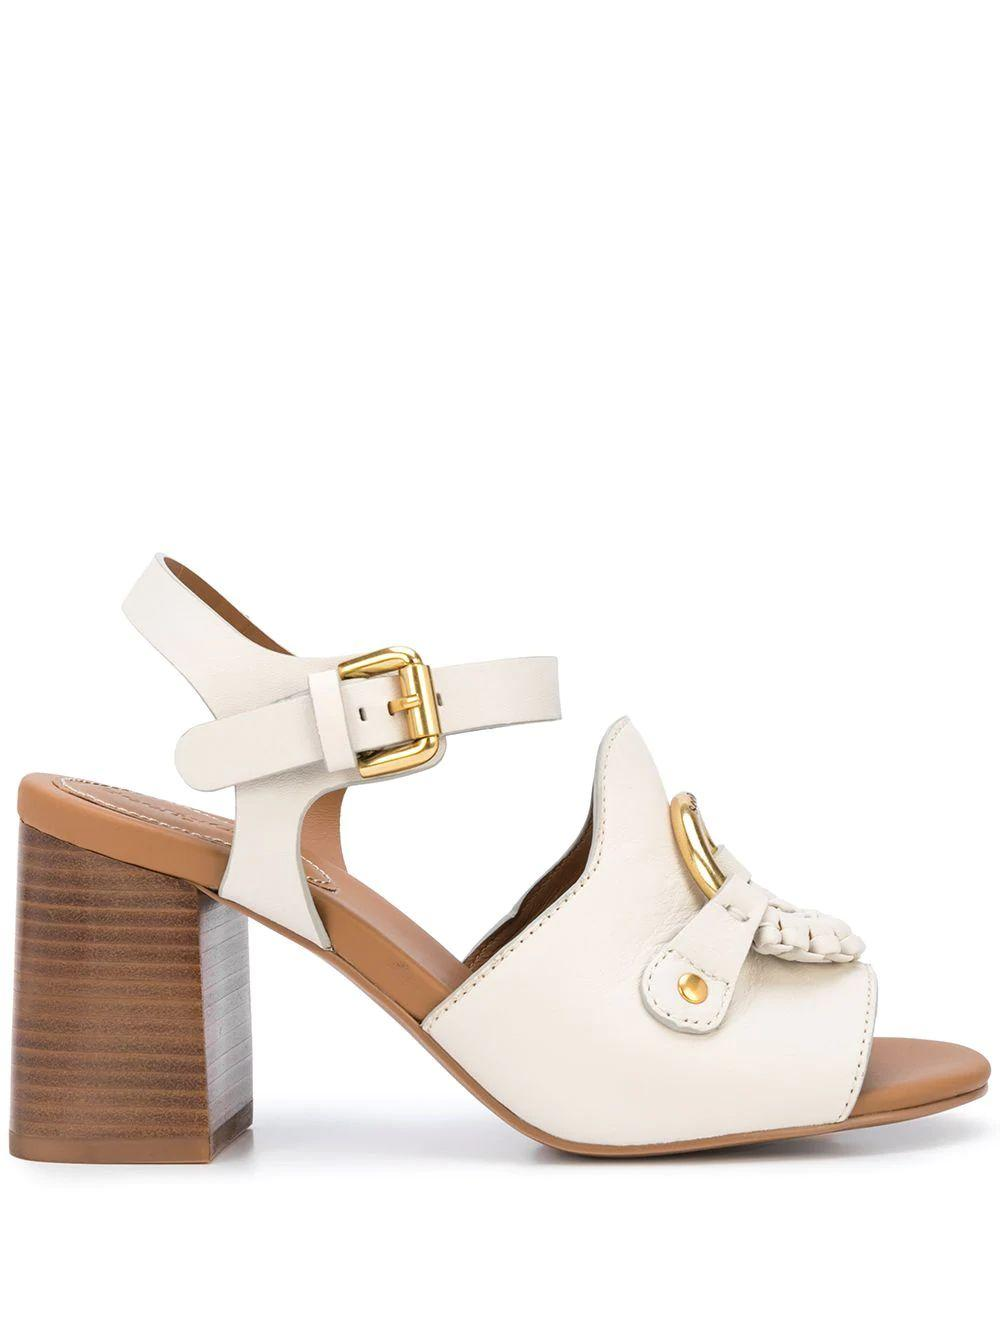 Leather Ankle Strap Sandal With Block Heel